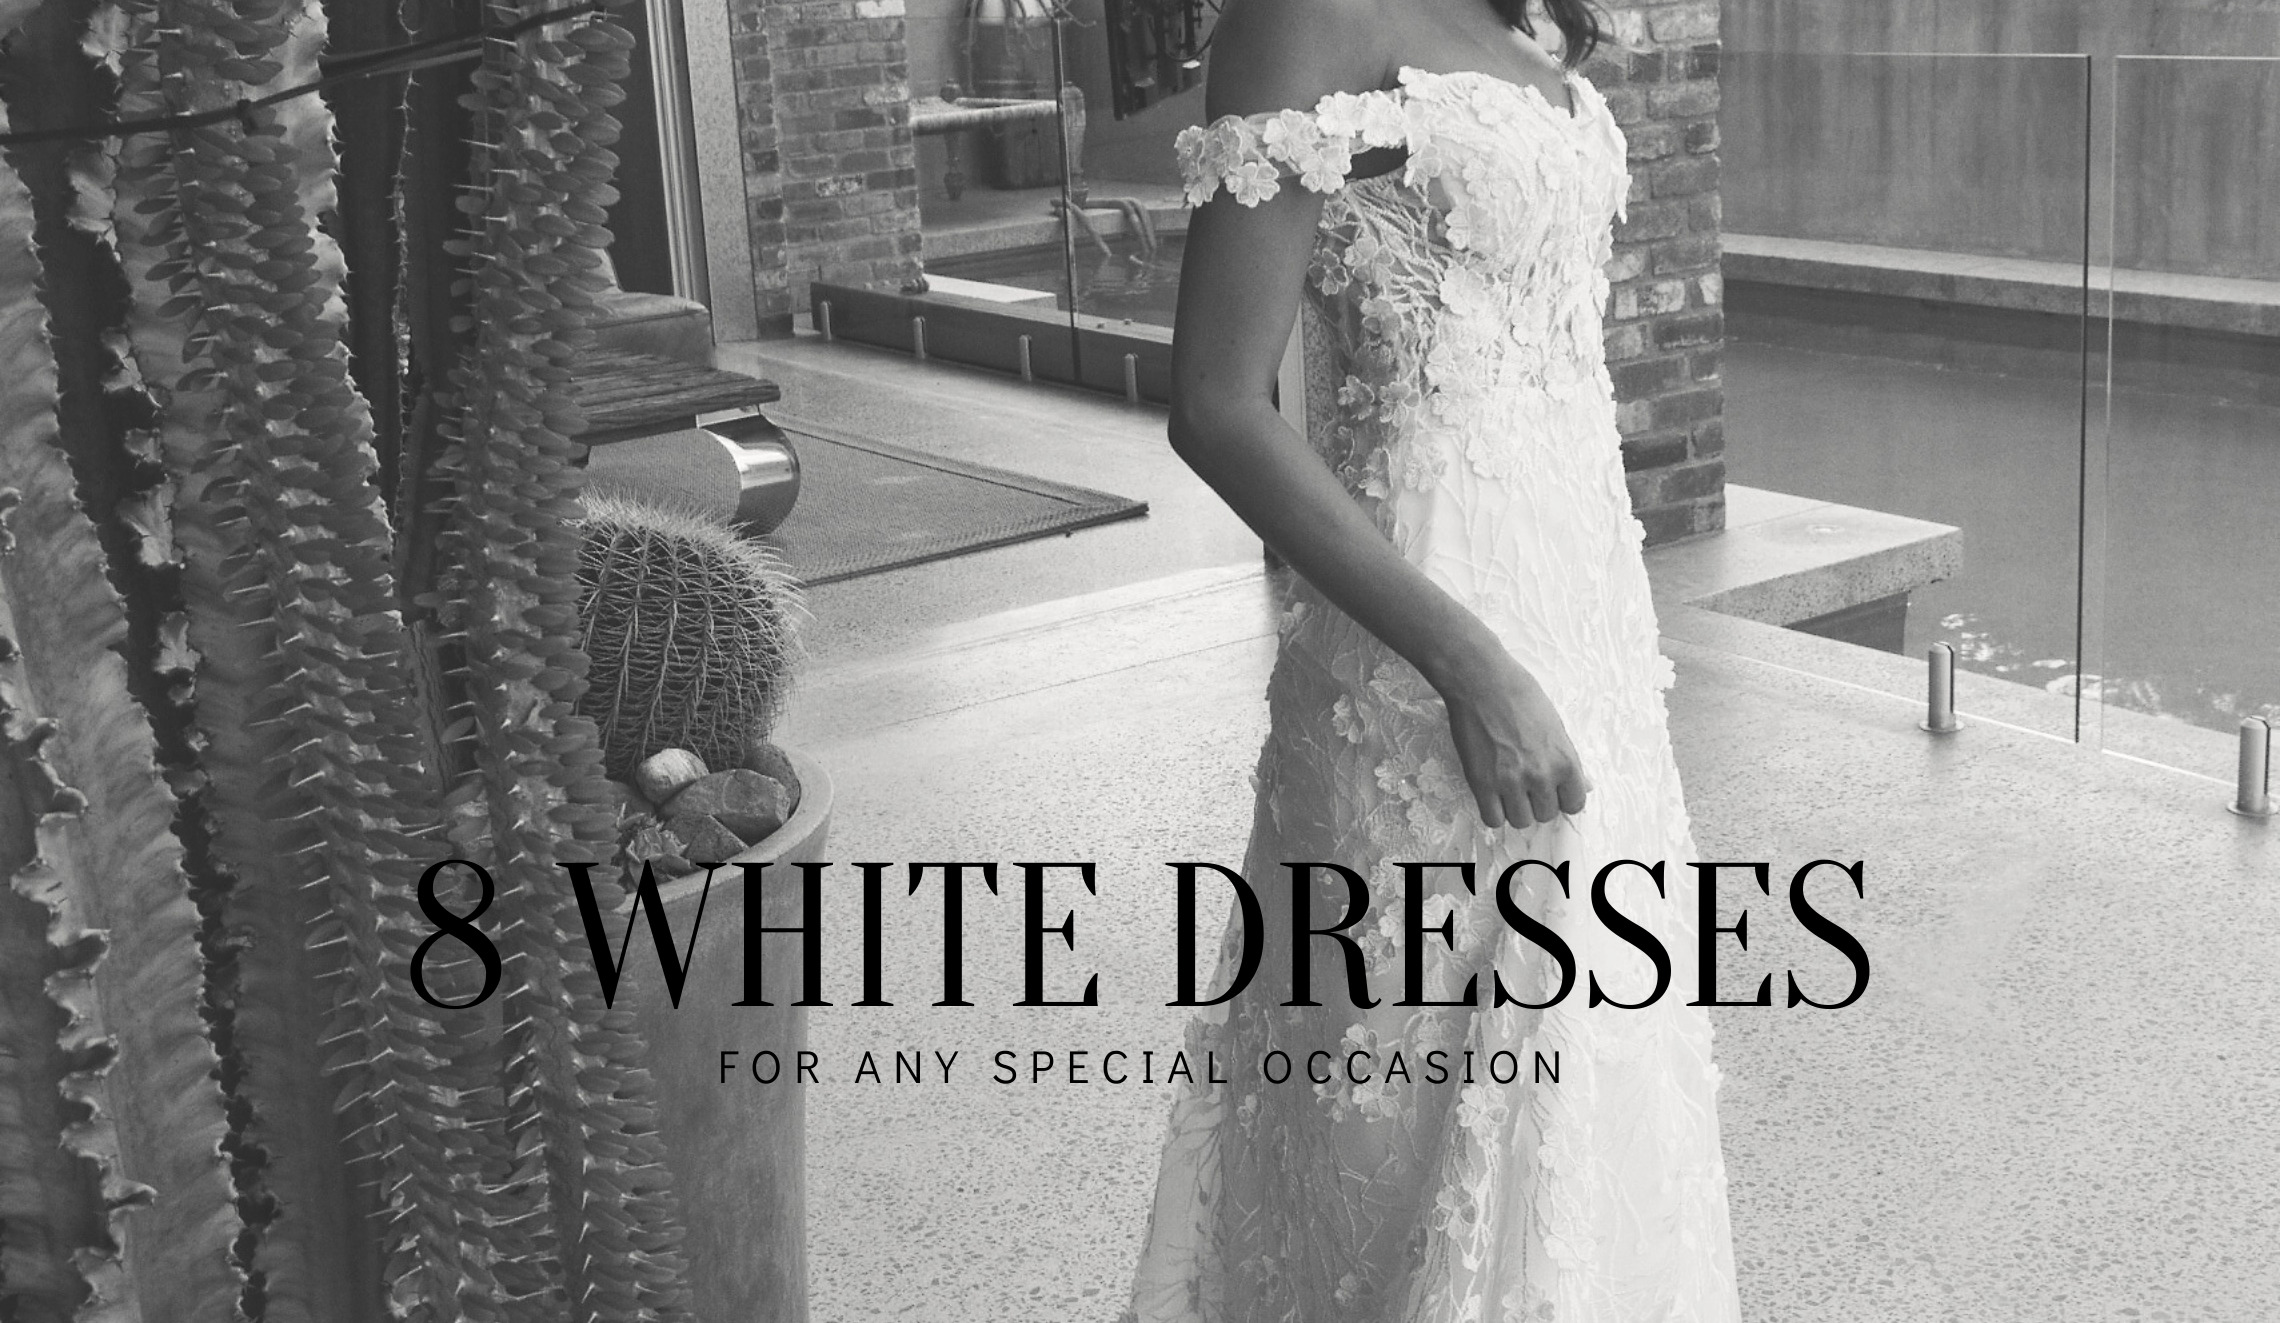 8 White dresses for any special occasion